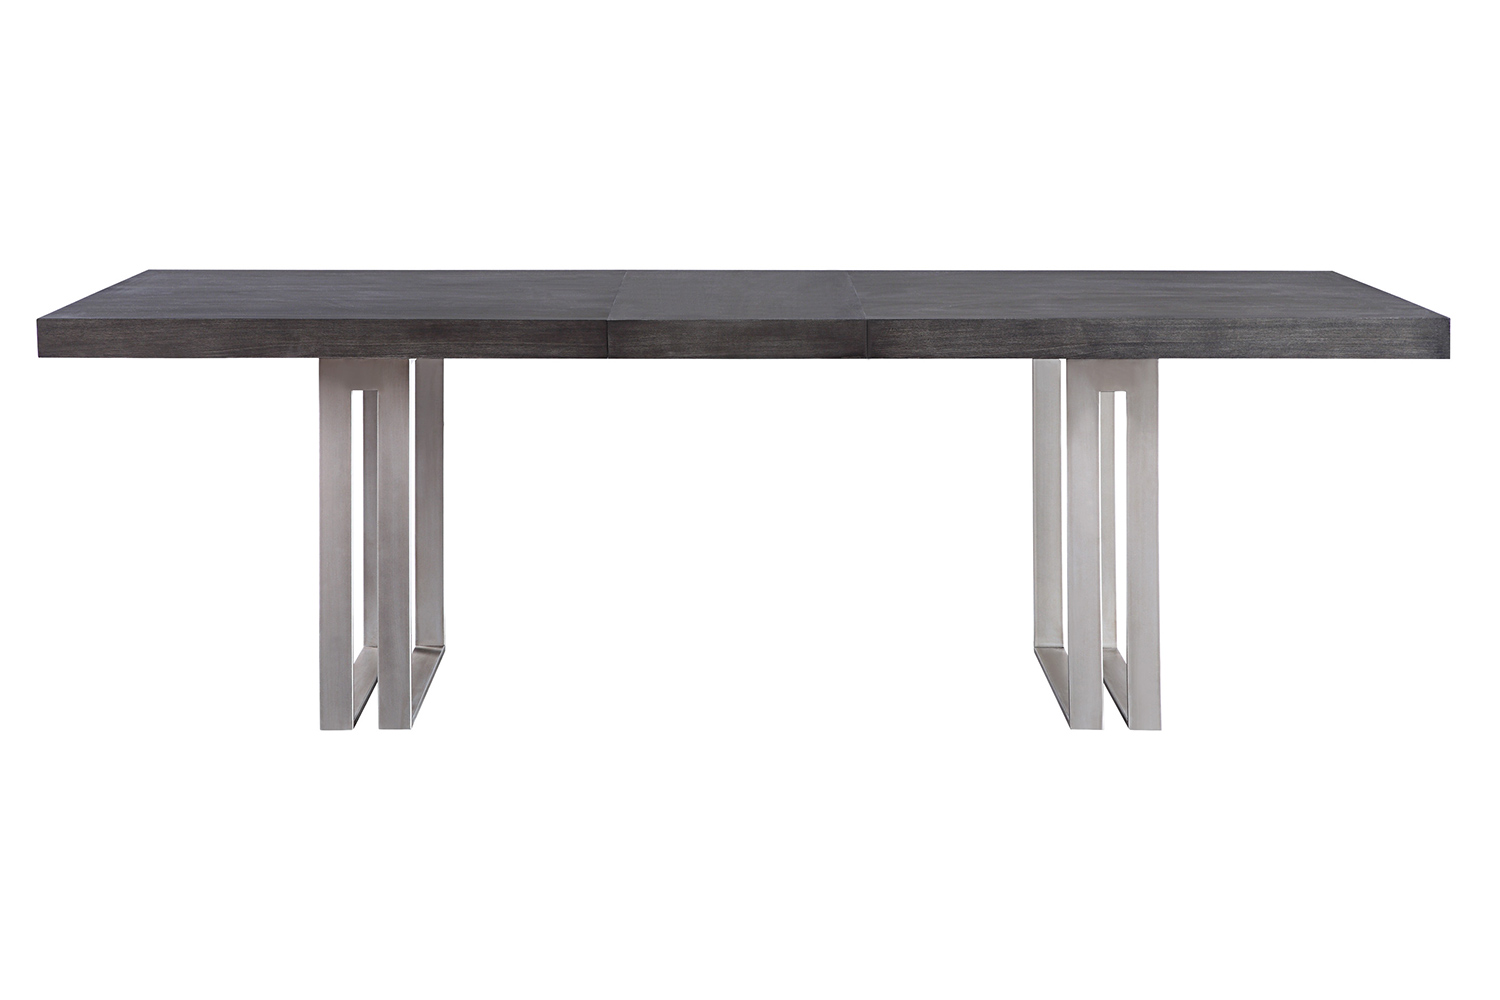 Homelegance Standish Dining Table - Gray